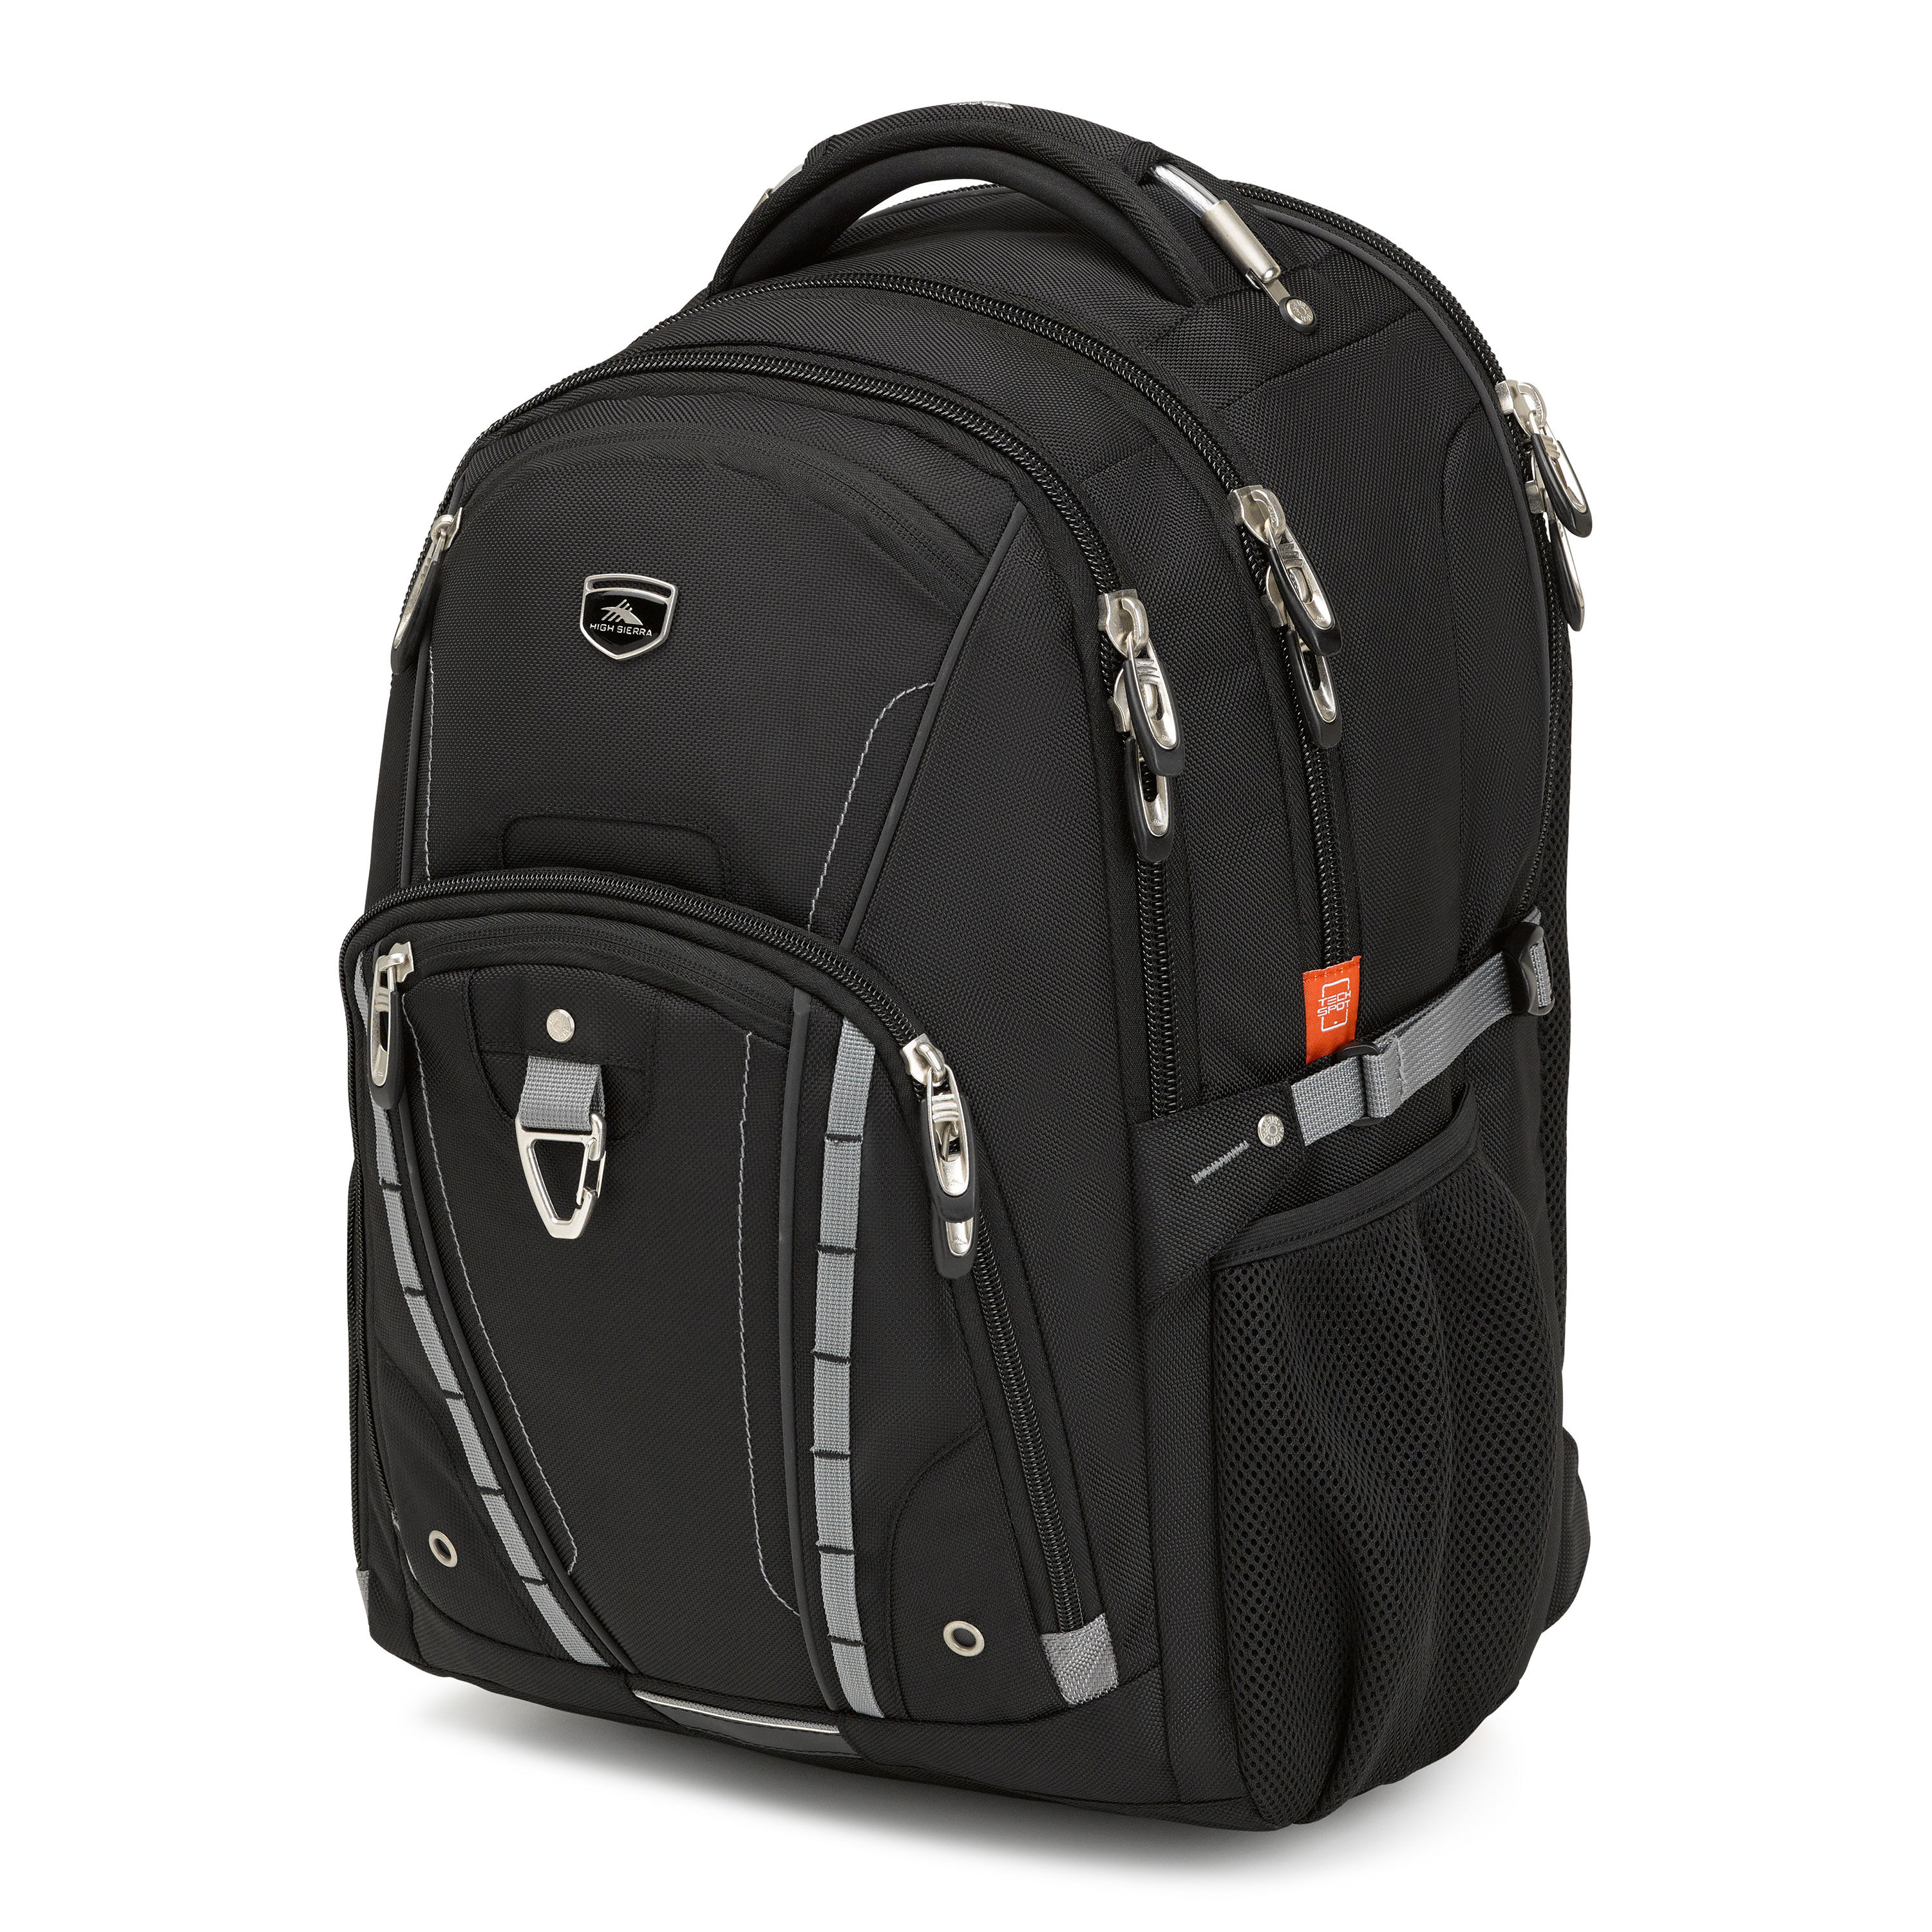 55b6c088625d backpack nike philippines cheap   OFF52% The Largest Catalog Discounts